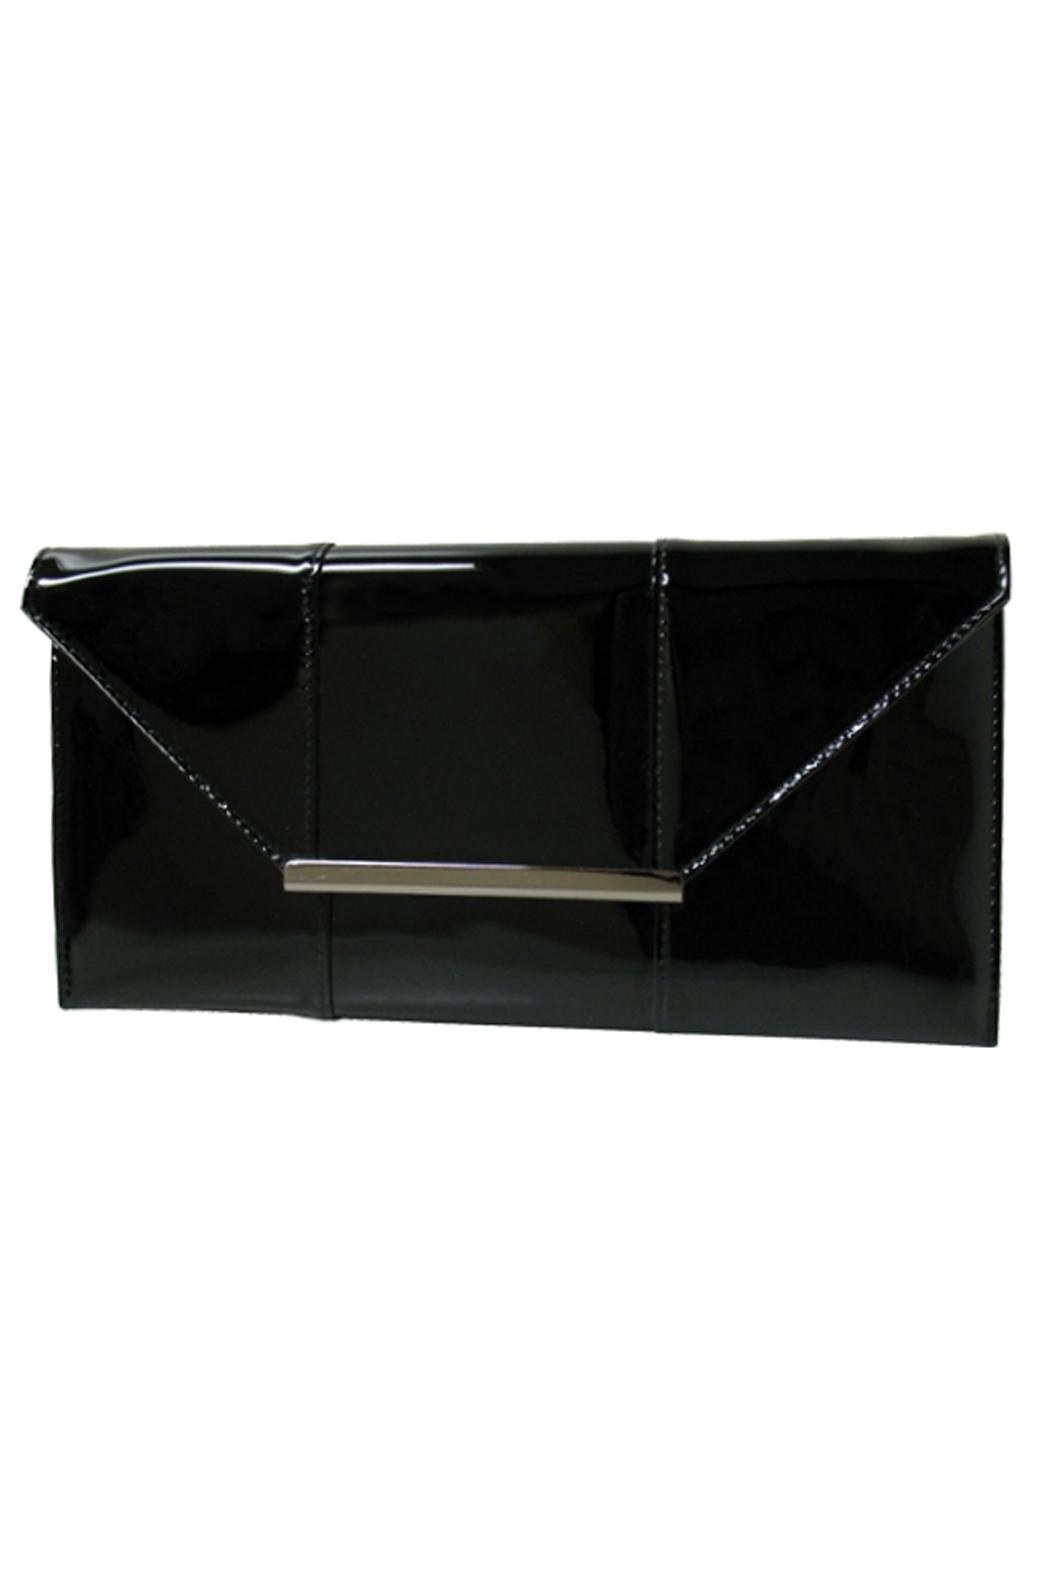 Wild Lilies Jewelry  Patent Leather Clutch - Main Image